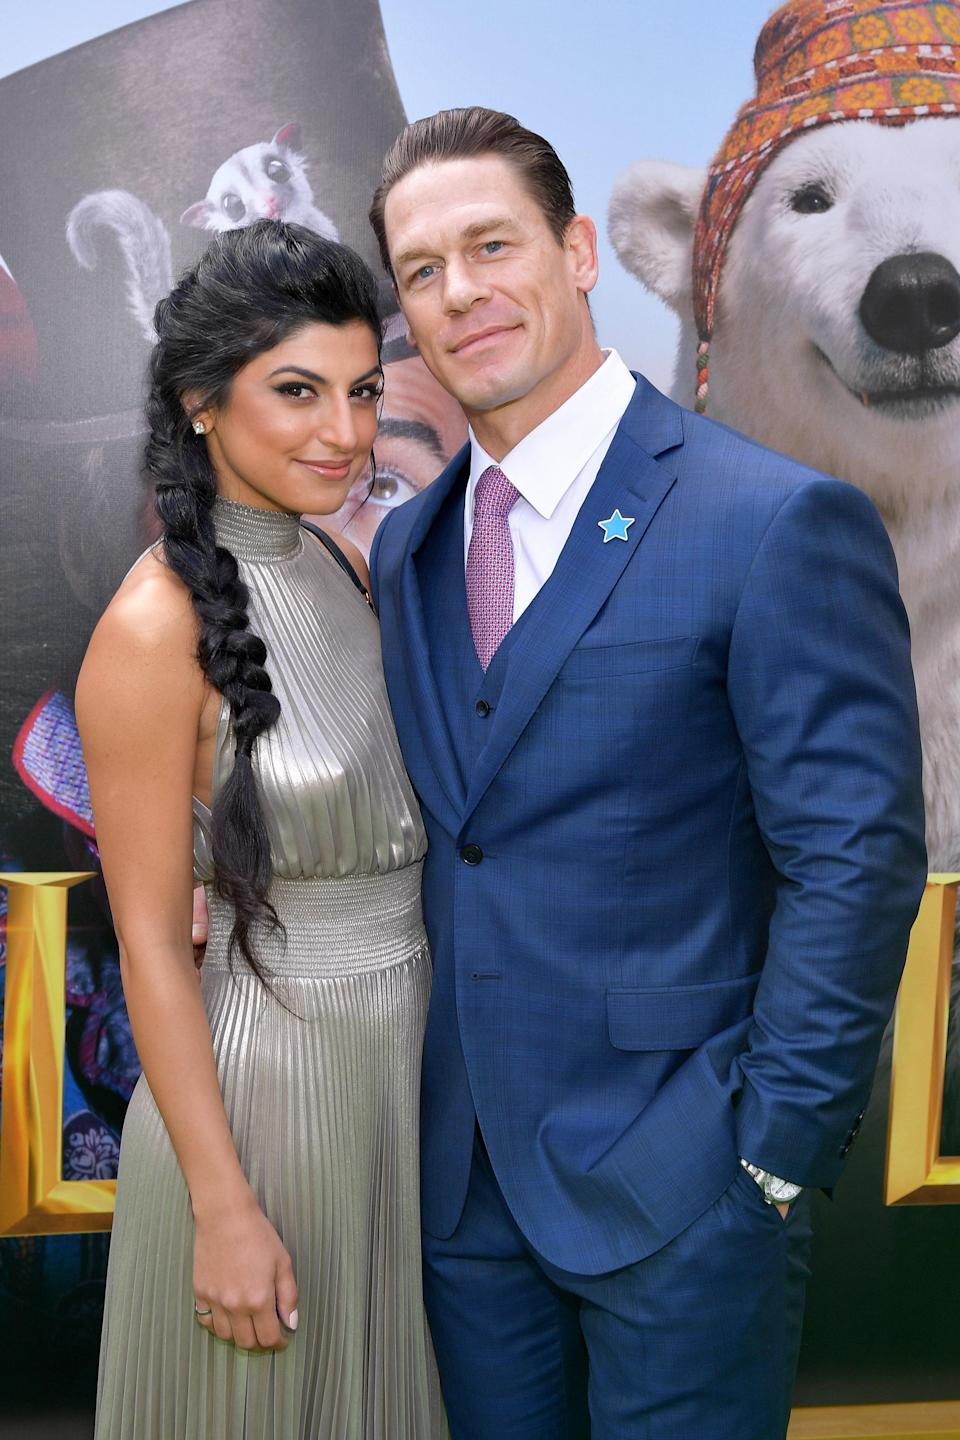 """John Cena and Shay Shariatzadeh <a href=""""https://www.tmz.com/2020/10/14/john-cena-marries-shay-shariatzadeh-marriage-license-filed/"""" rel=""""nofollow noopener"""" target=""""_blank"""" data-ylk=""""slk:reportedly"""" class=""""link rapid-noclick-resp"""">reportedly</a> wed in Florida on Monday, October 12, at an attorney's office in Florida. While the couple haven't responded to requests for comment, <a href=""""https://people.com/movies/john-cena-marries-shay-shariatzadeh/"""" rel=""""nofollow noopener"""" target=""""_blank"""" data-ylk=""""slk:People obtained"""" class=""""link rapid-noclick-resp""""><em>People</em> obtained</a> the marriage certificate. Cena and Shariatzadeh have been linked to each other since March 2019—it's his first public relationship since splitting from Nikki Bella in 2018."""